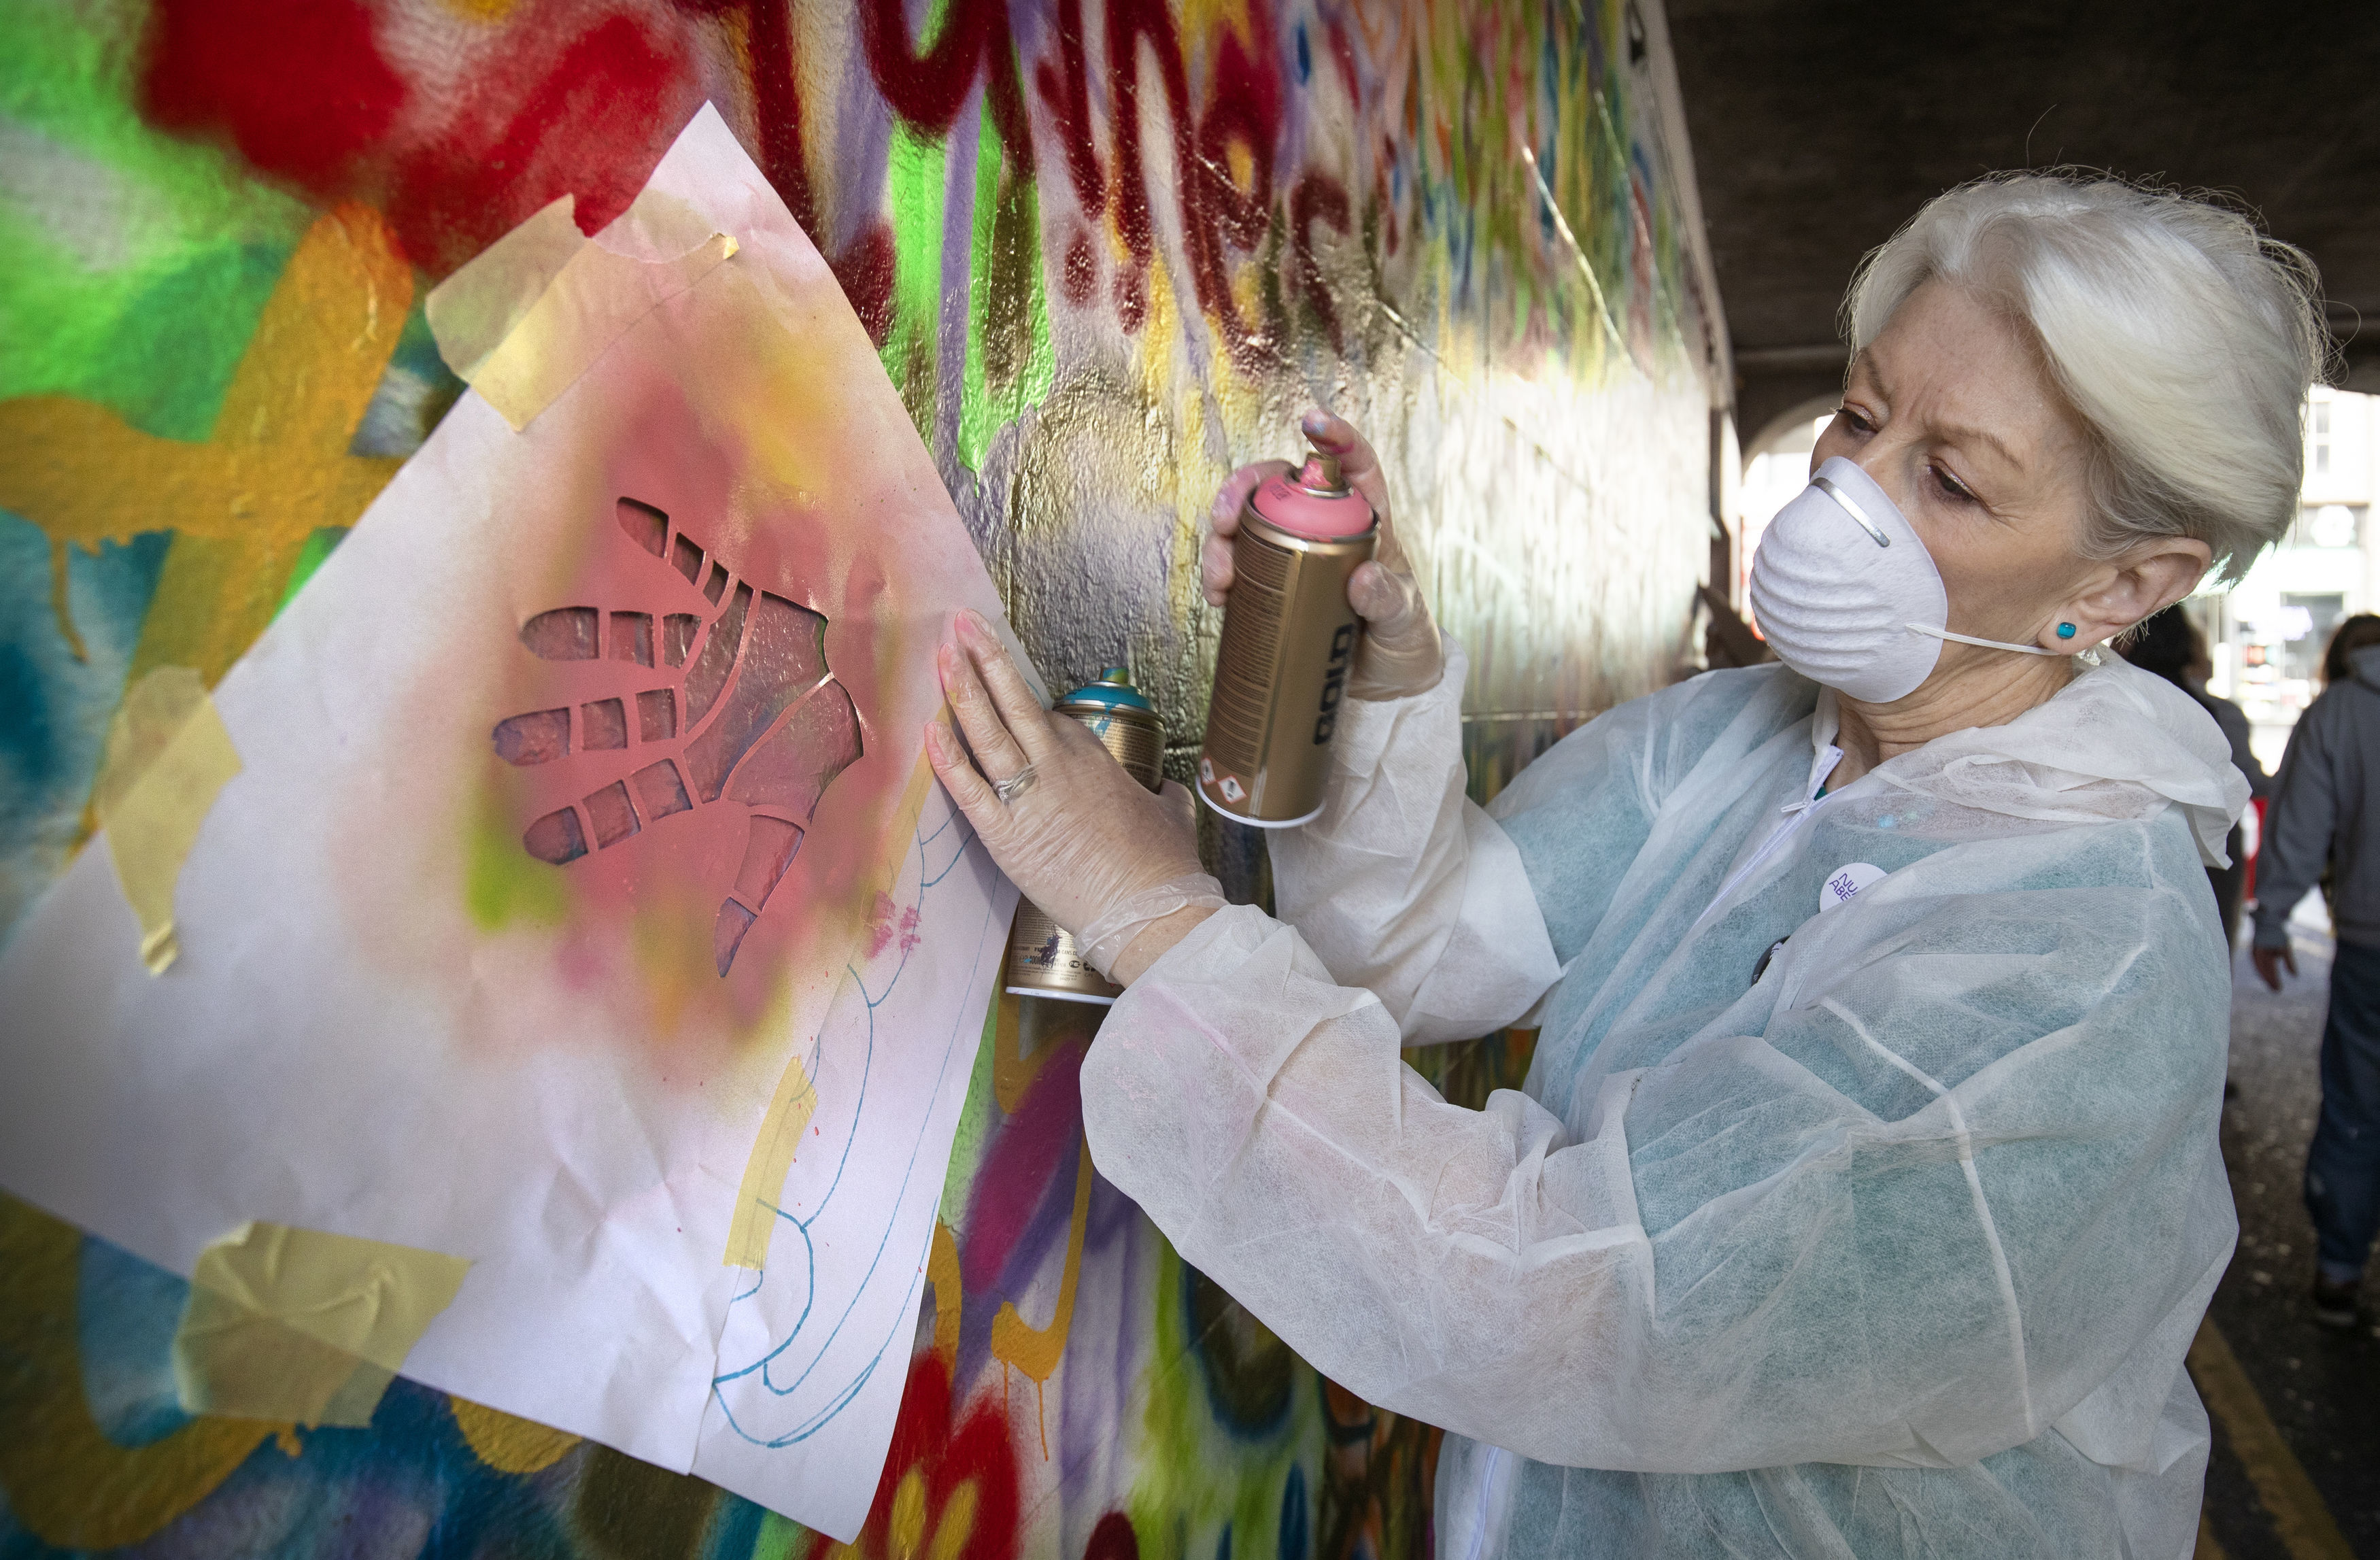 Graffiti Grannies taking over Aberdeen street art festival